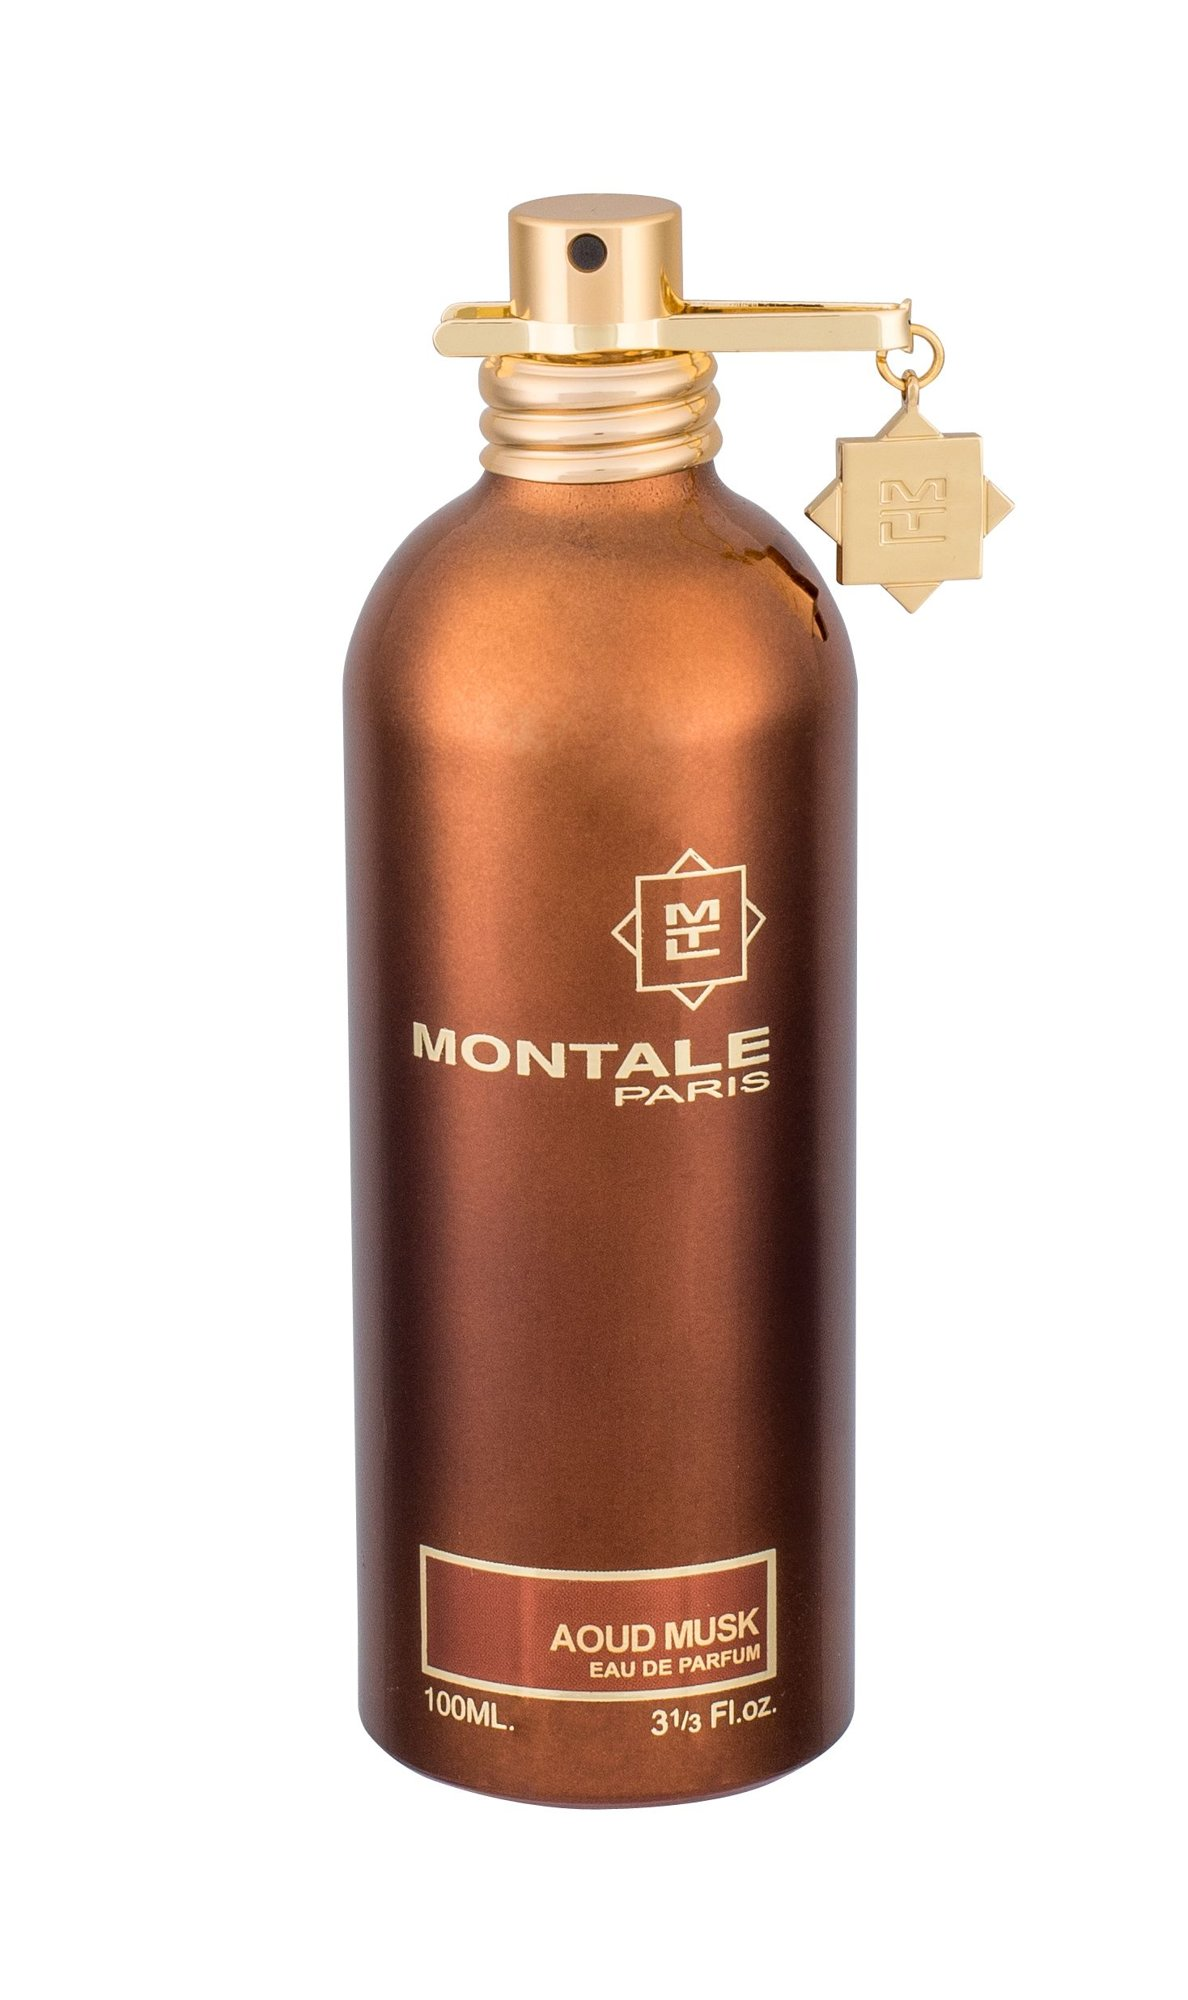 Montale Paris Aoud Musk EDP 100ml